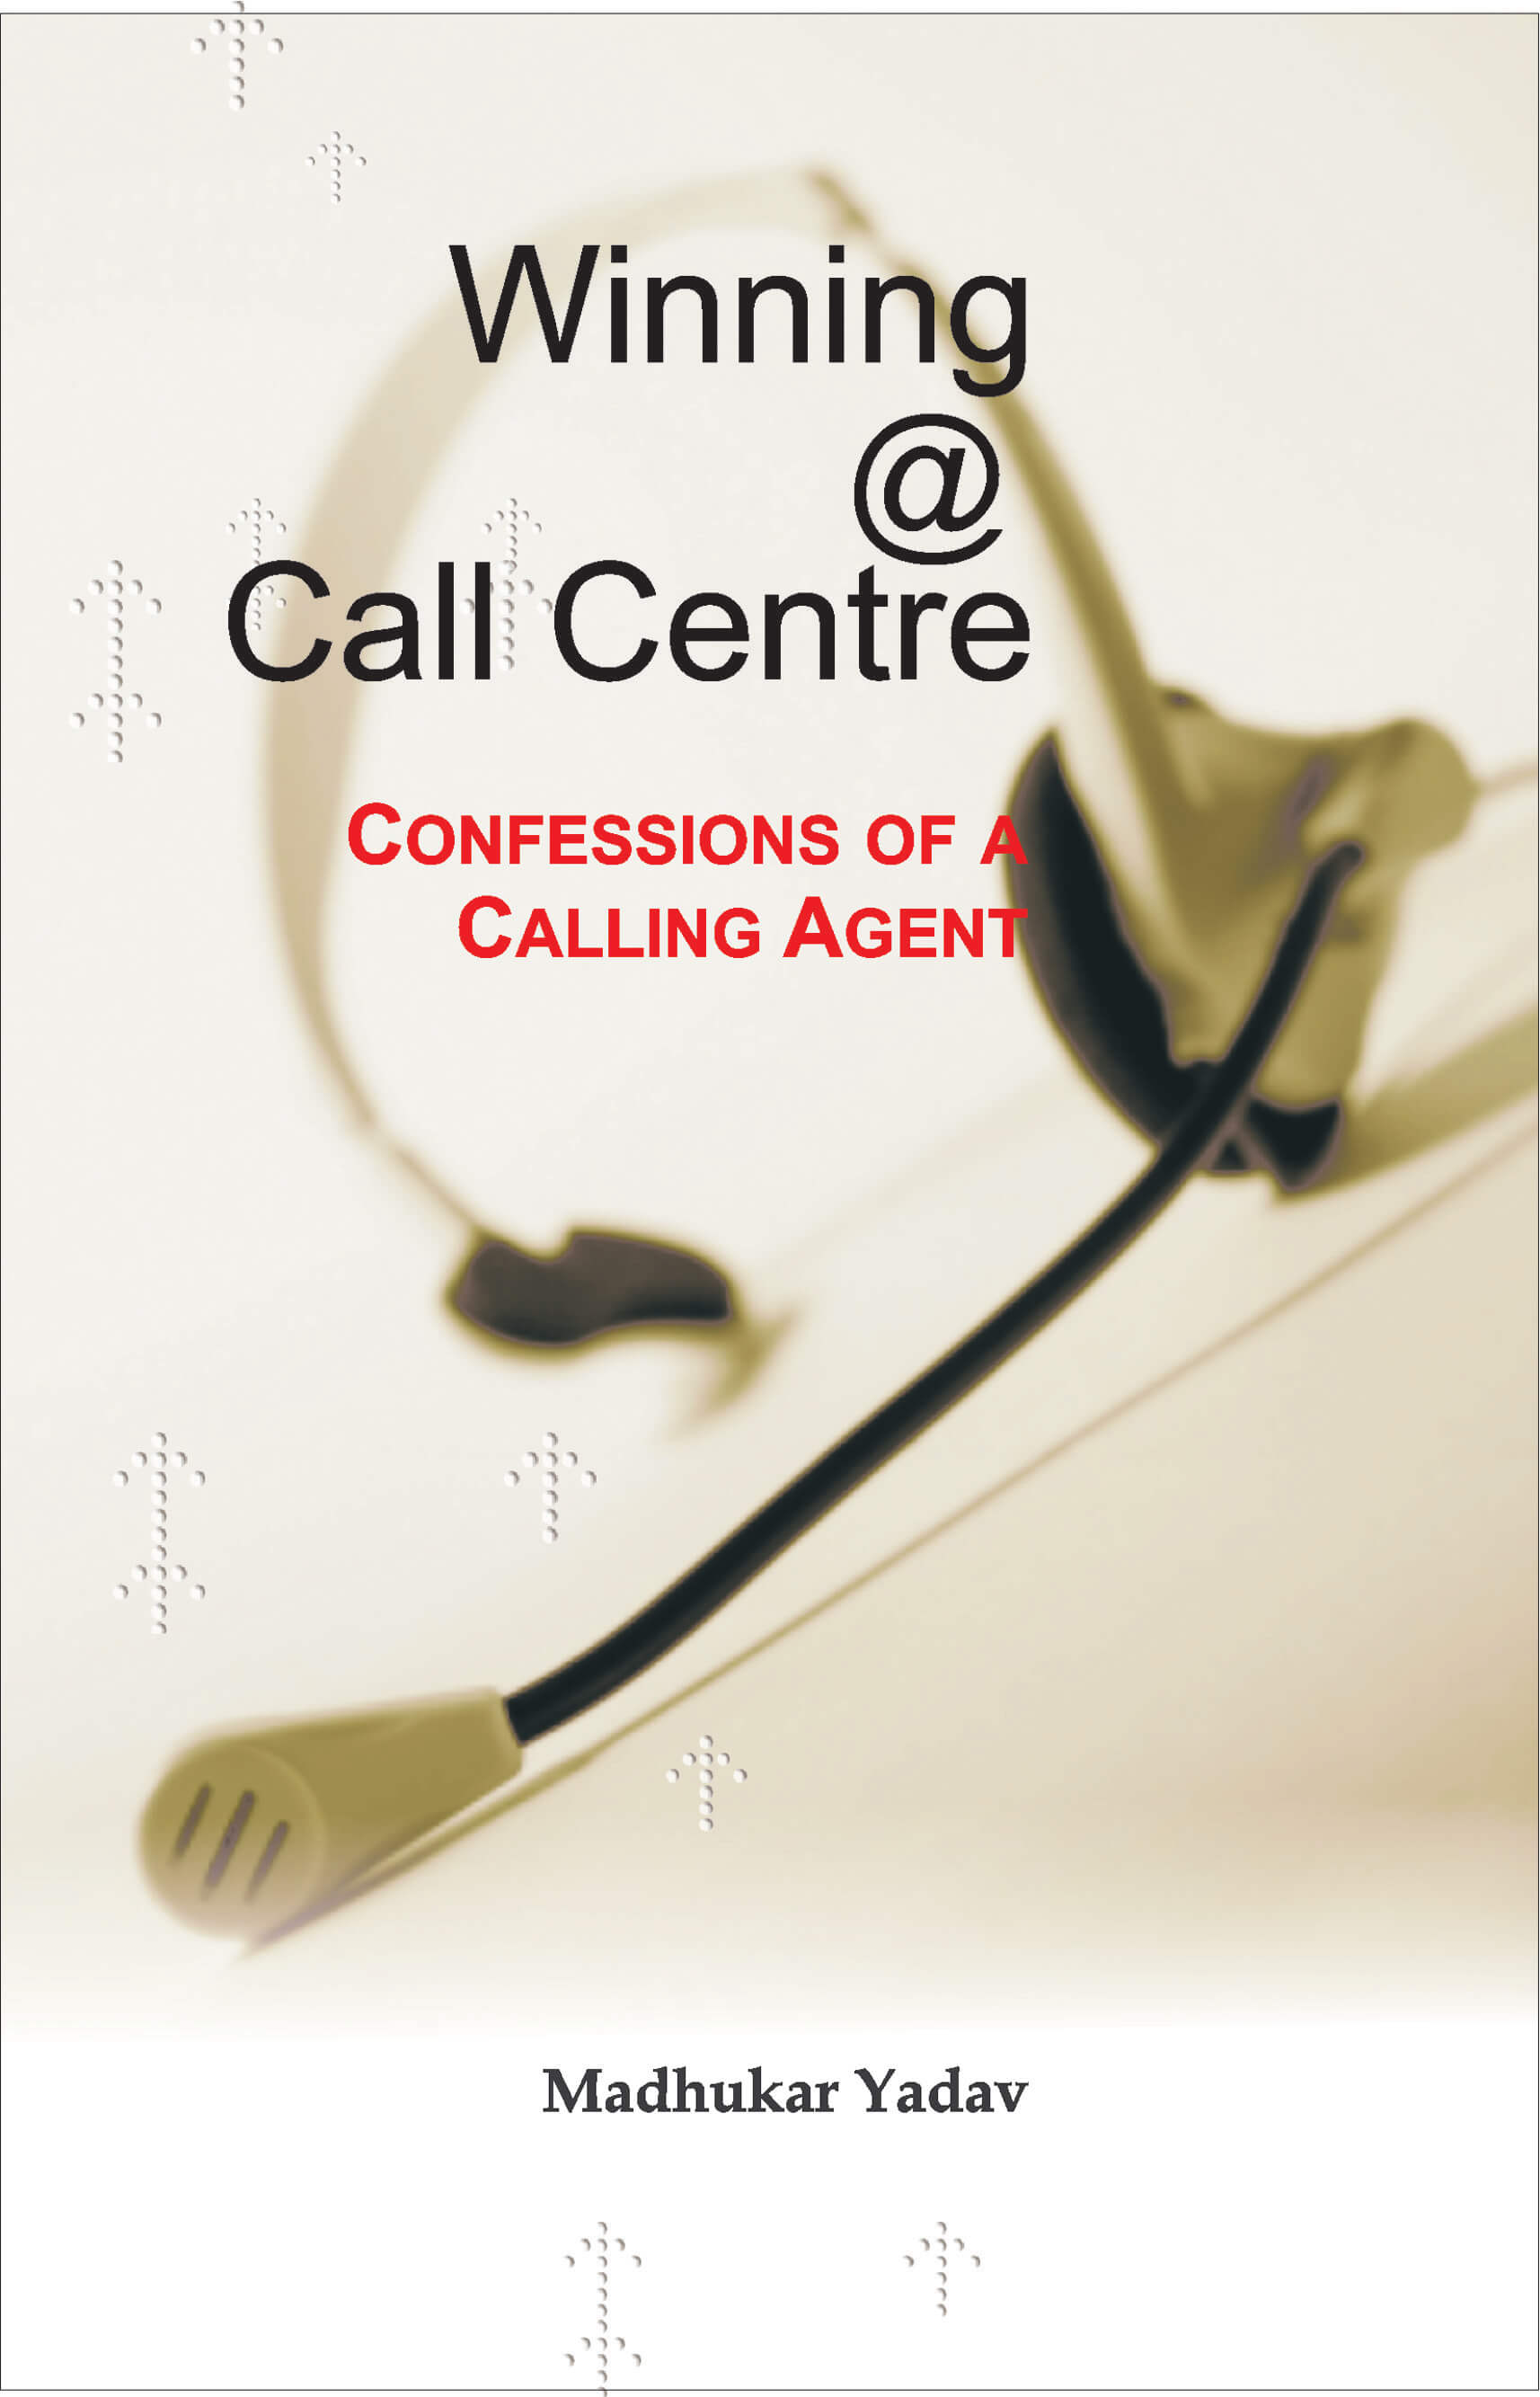 Winning @ Call Centre: Confessions of a Calling Agent